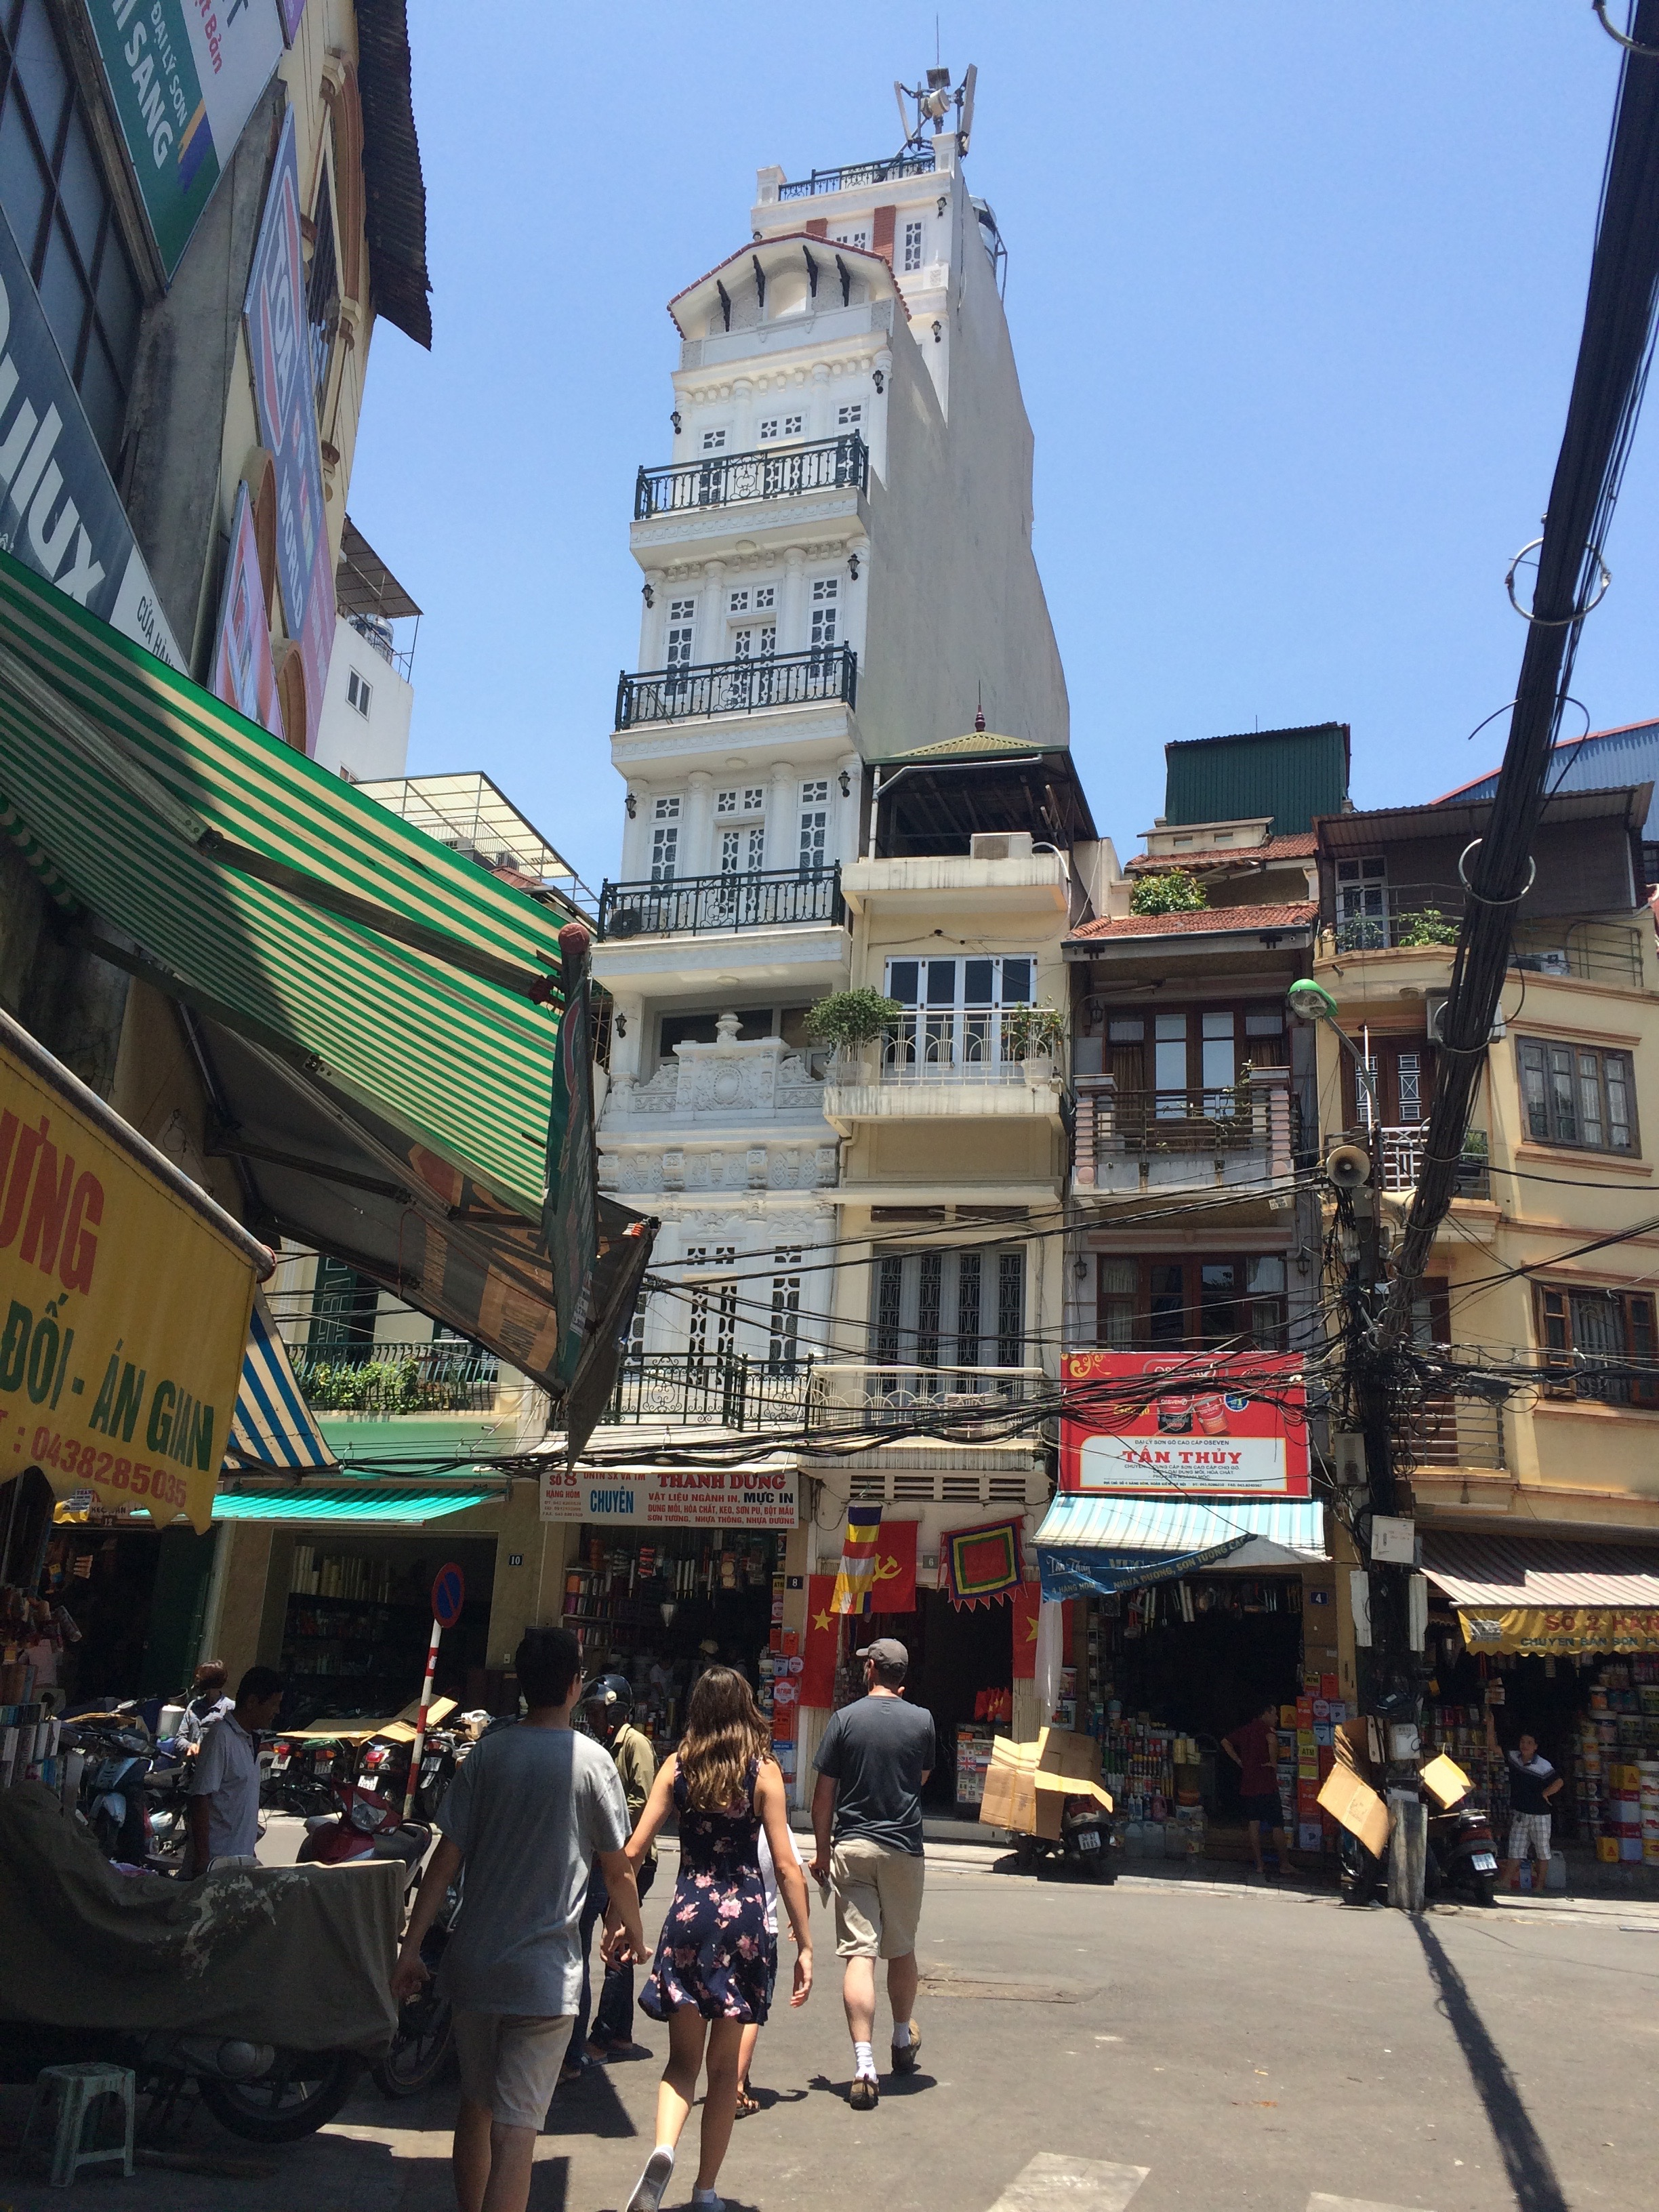 Why are buildings so tall and skinny in Hanoi?